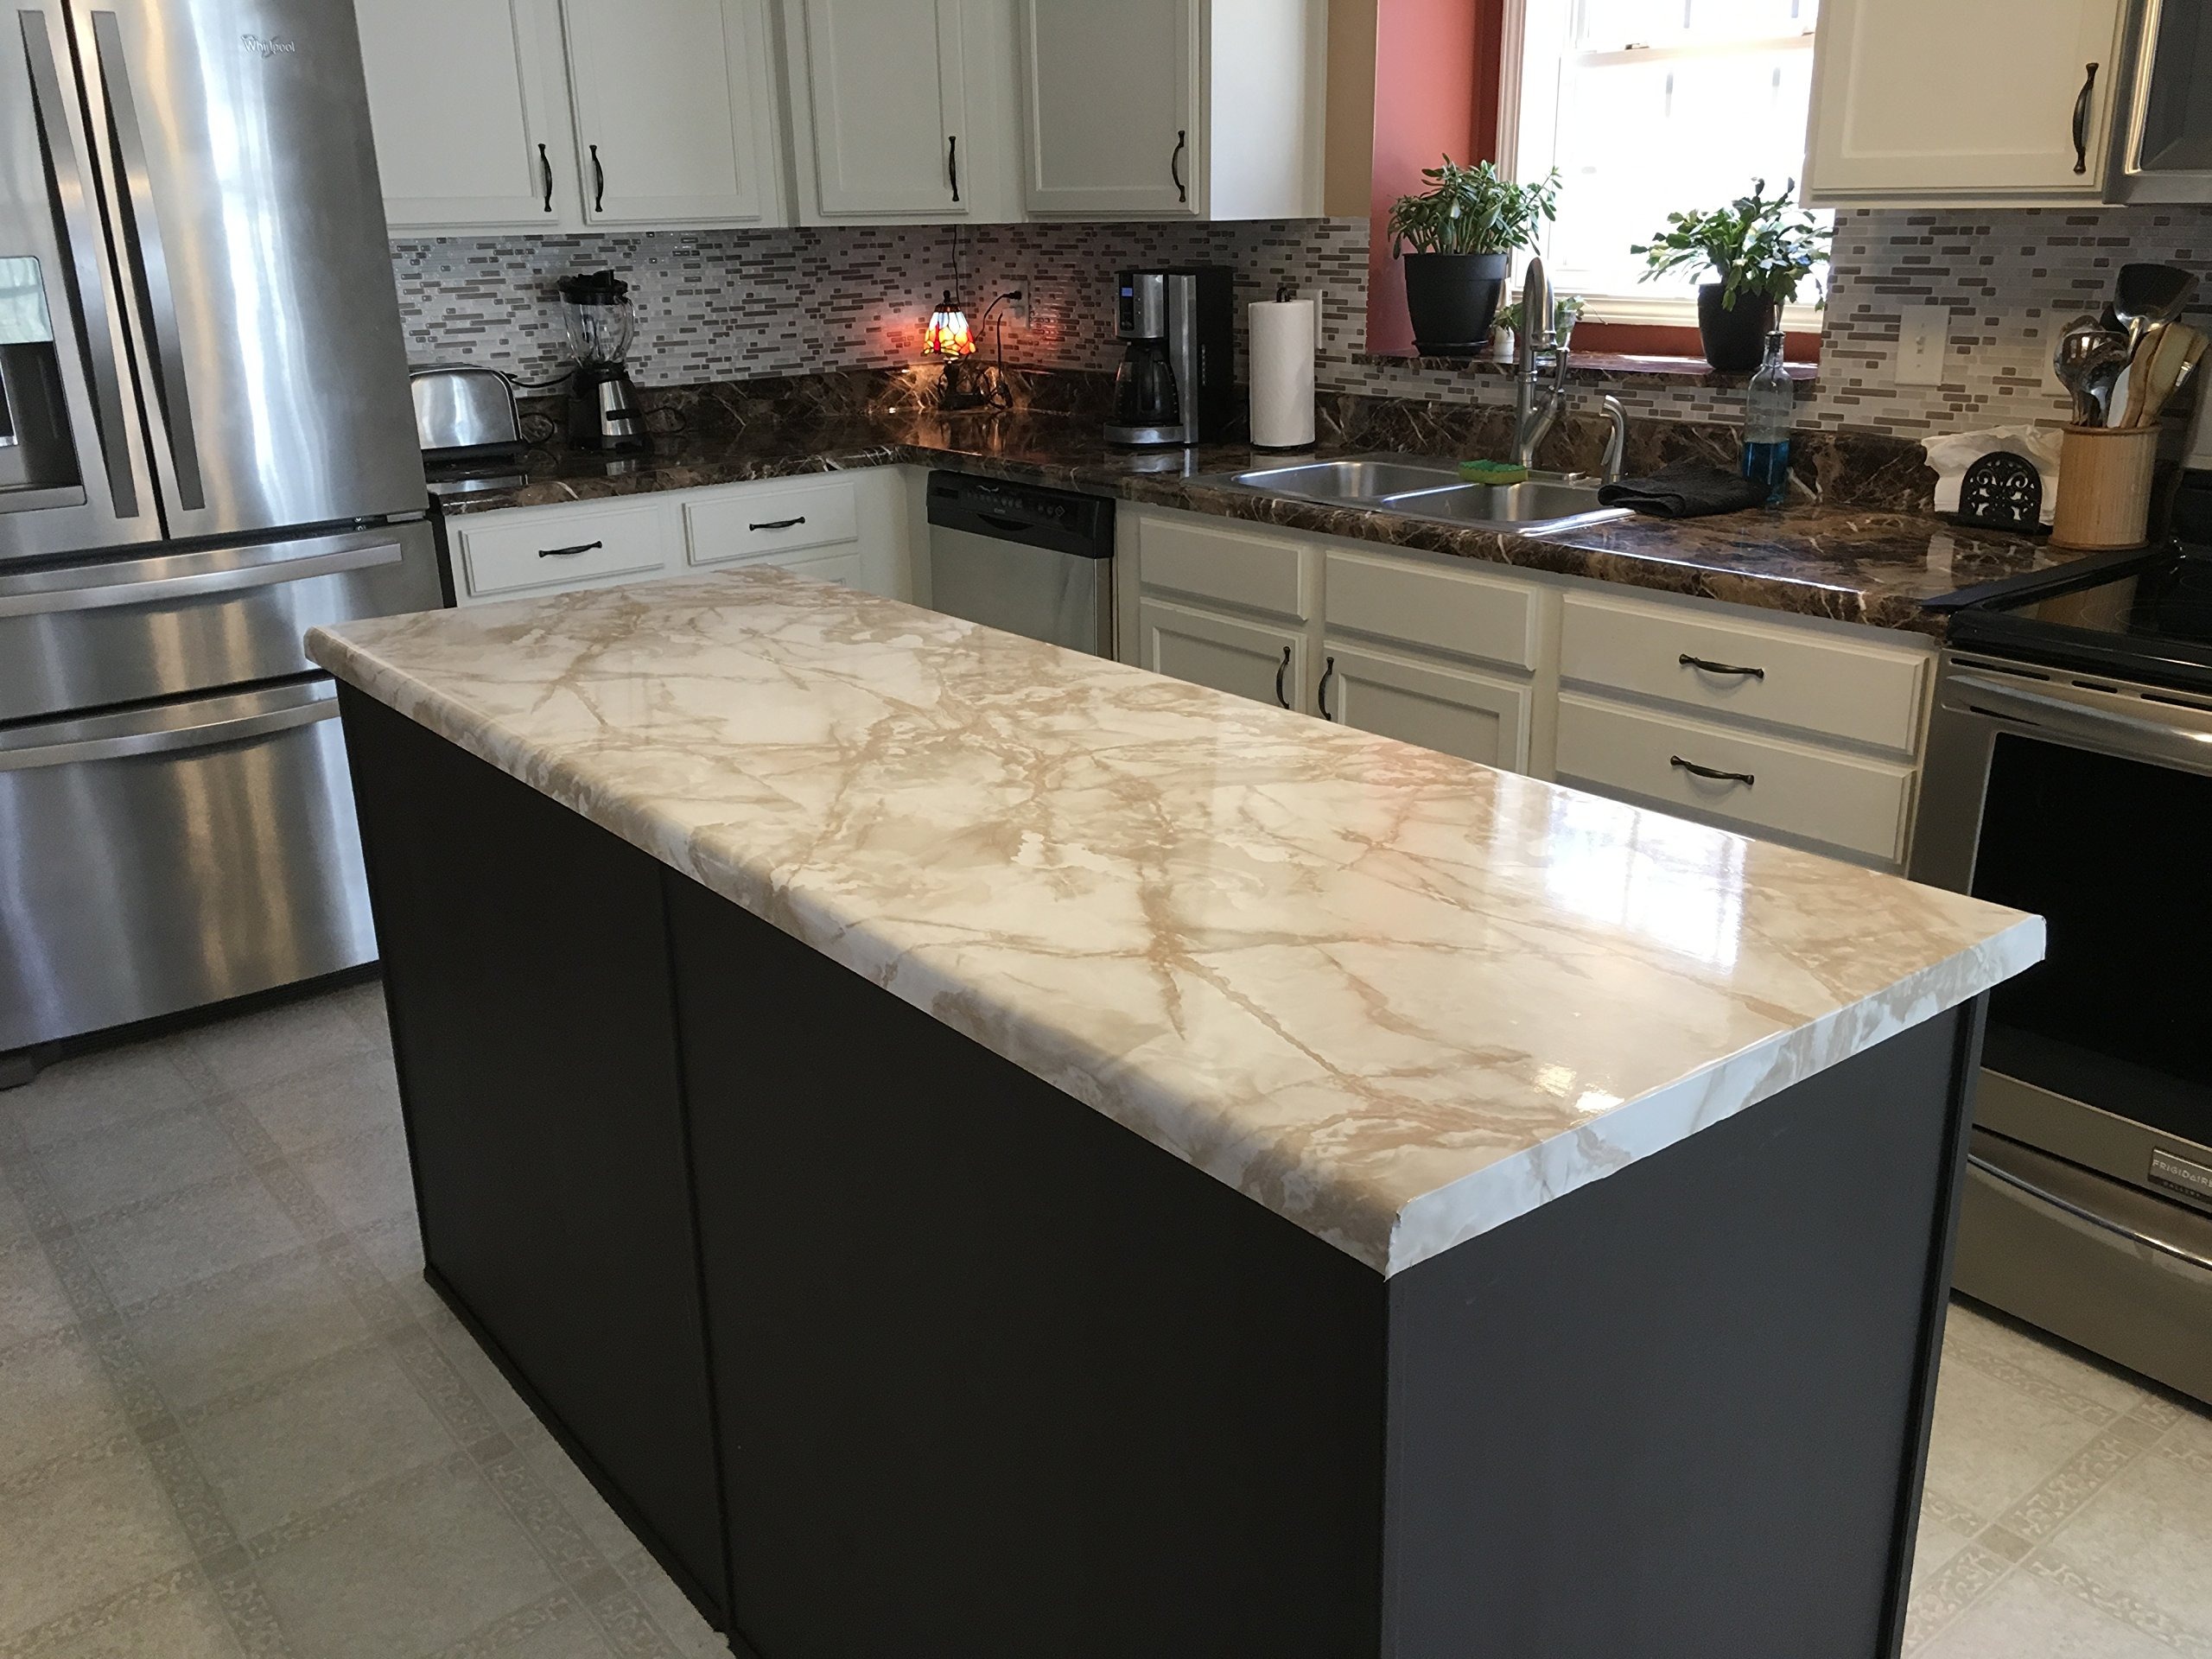 EZ FAUX DECOR 36'' W x 240'' L Decorative Peel and Stick White Riviera Creme Brulee Faux Marble Self Adhesive Counter Top Vinyl Film Update NOT Grandma's Contact Paper by EZ FAUX DECOR (Image #6)